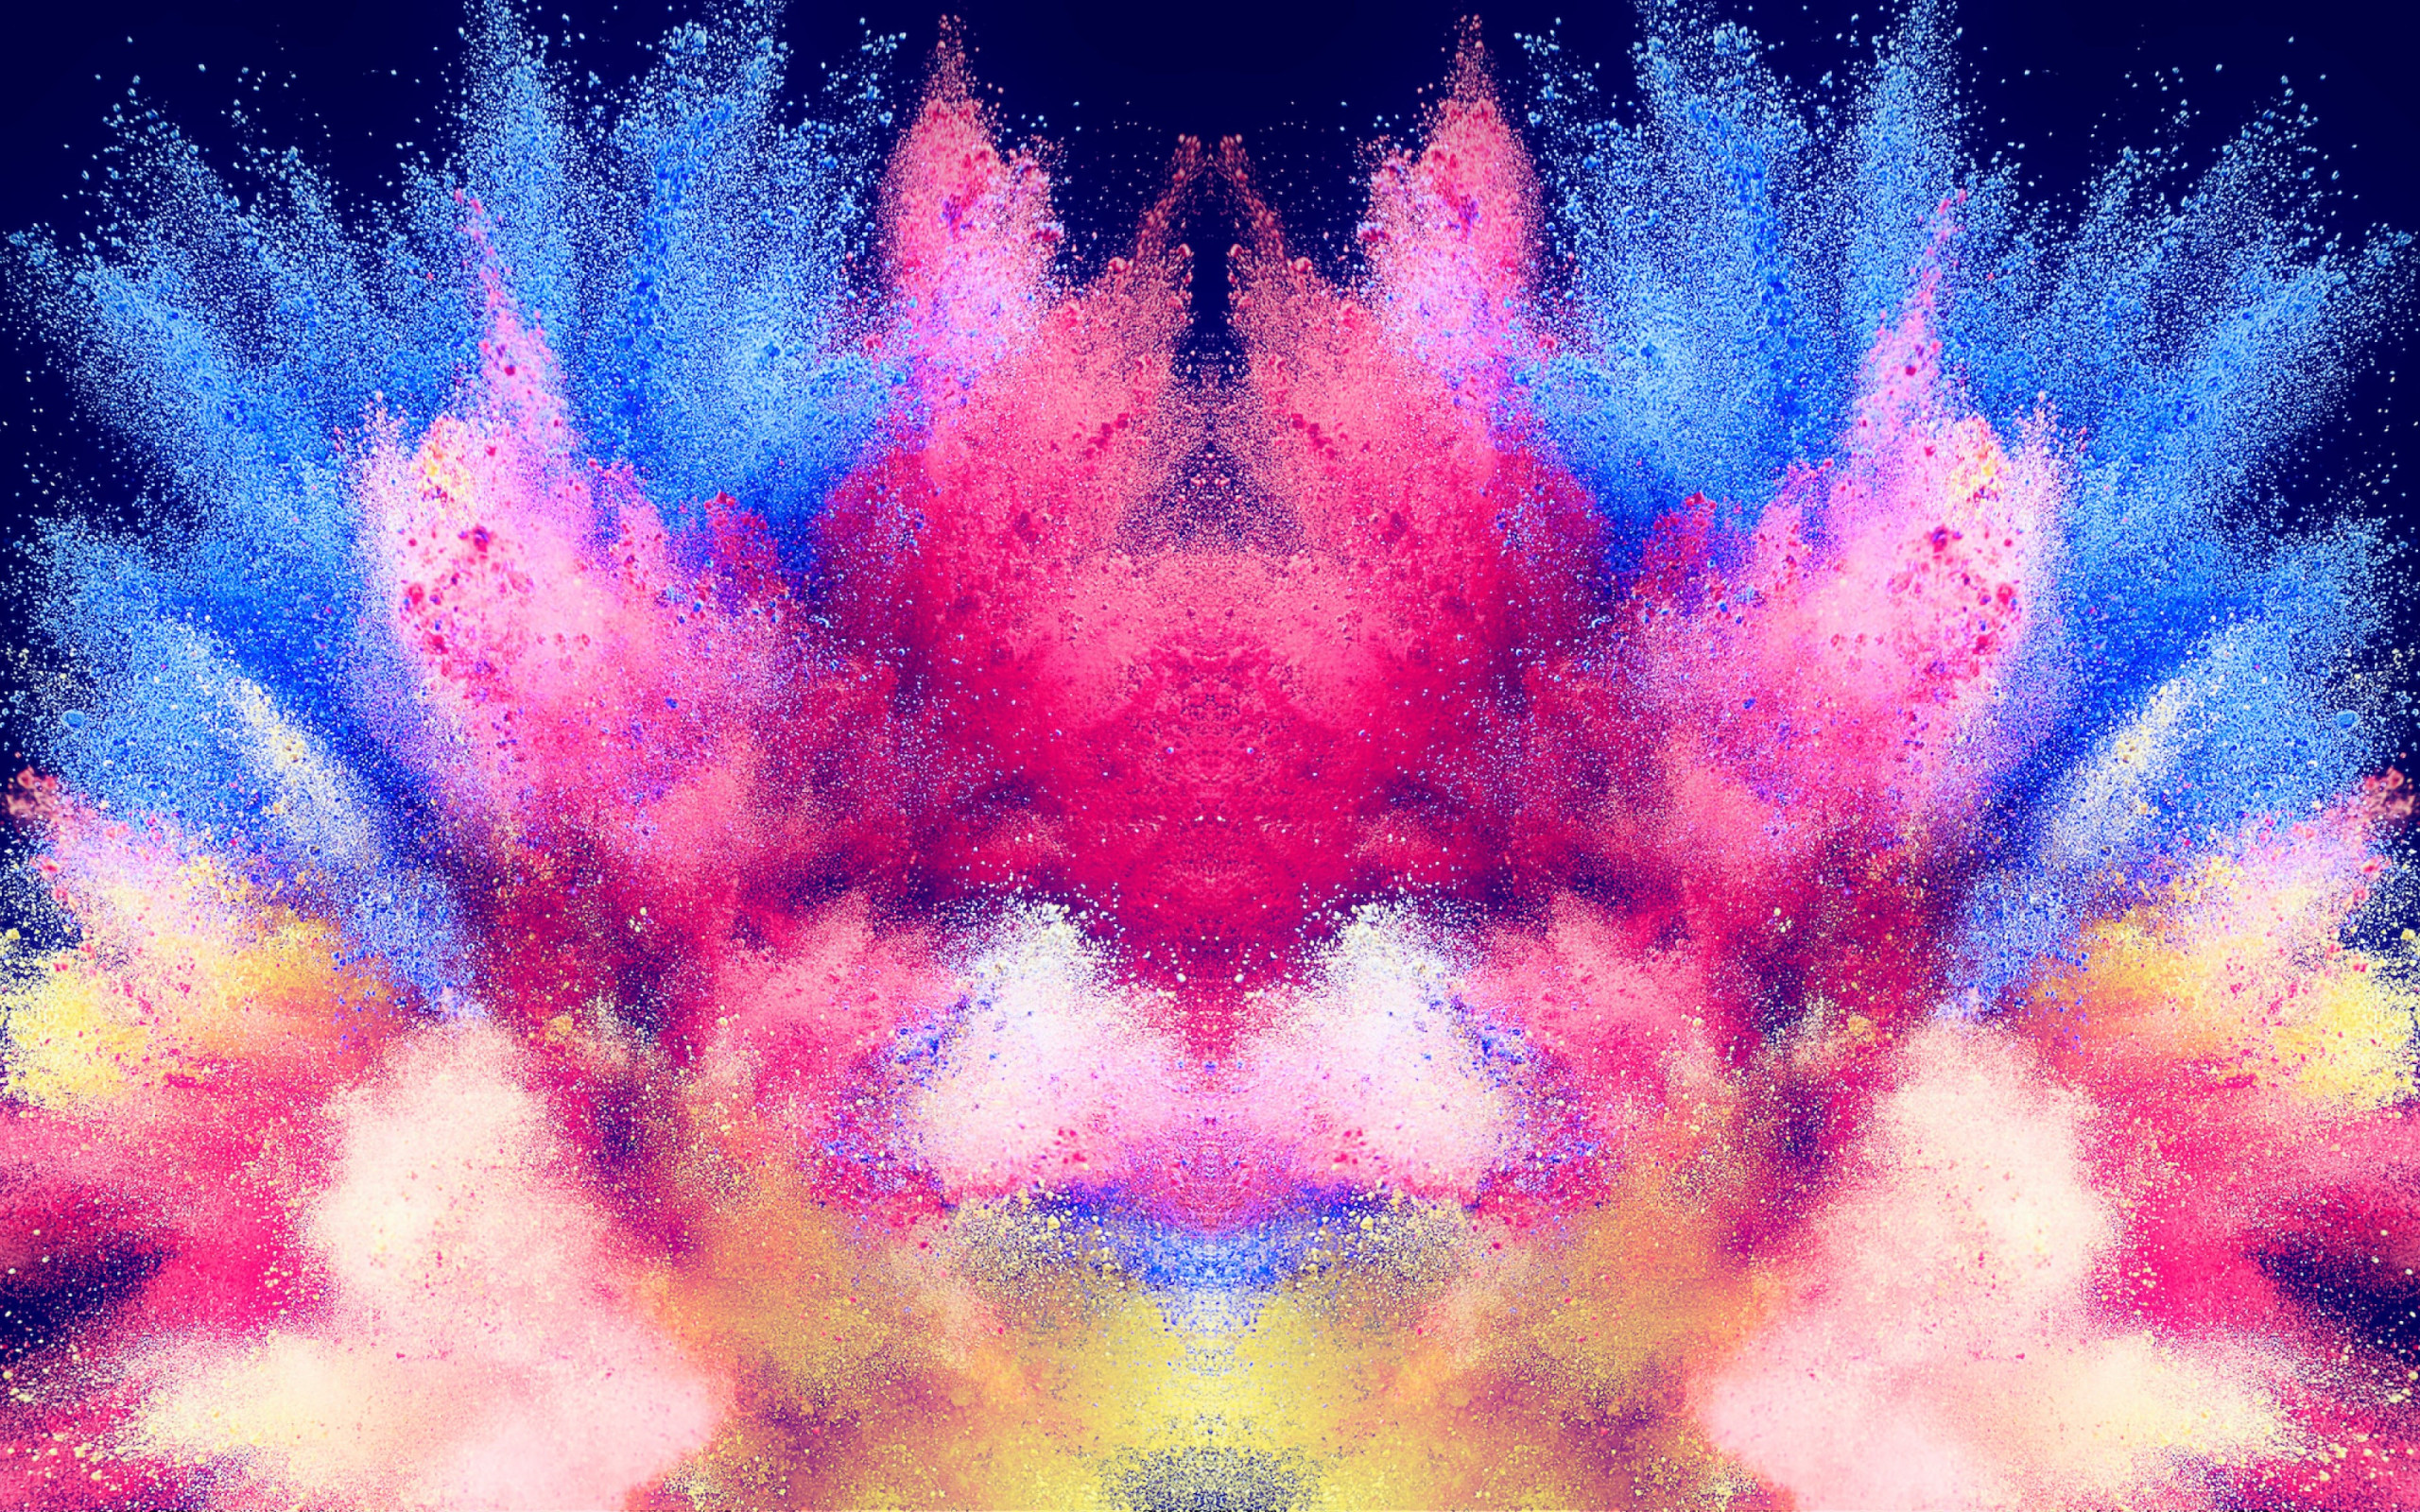 Abstract illustration: Powder colors wallpaper 2560x1600